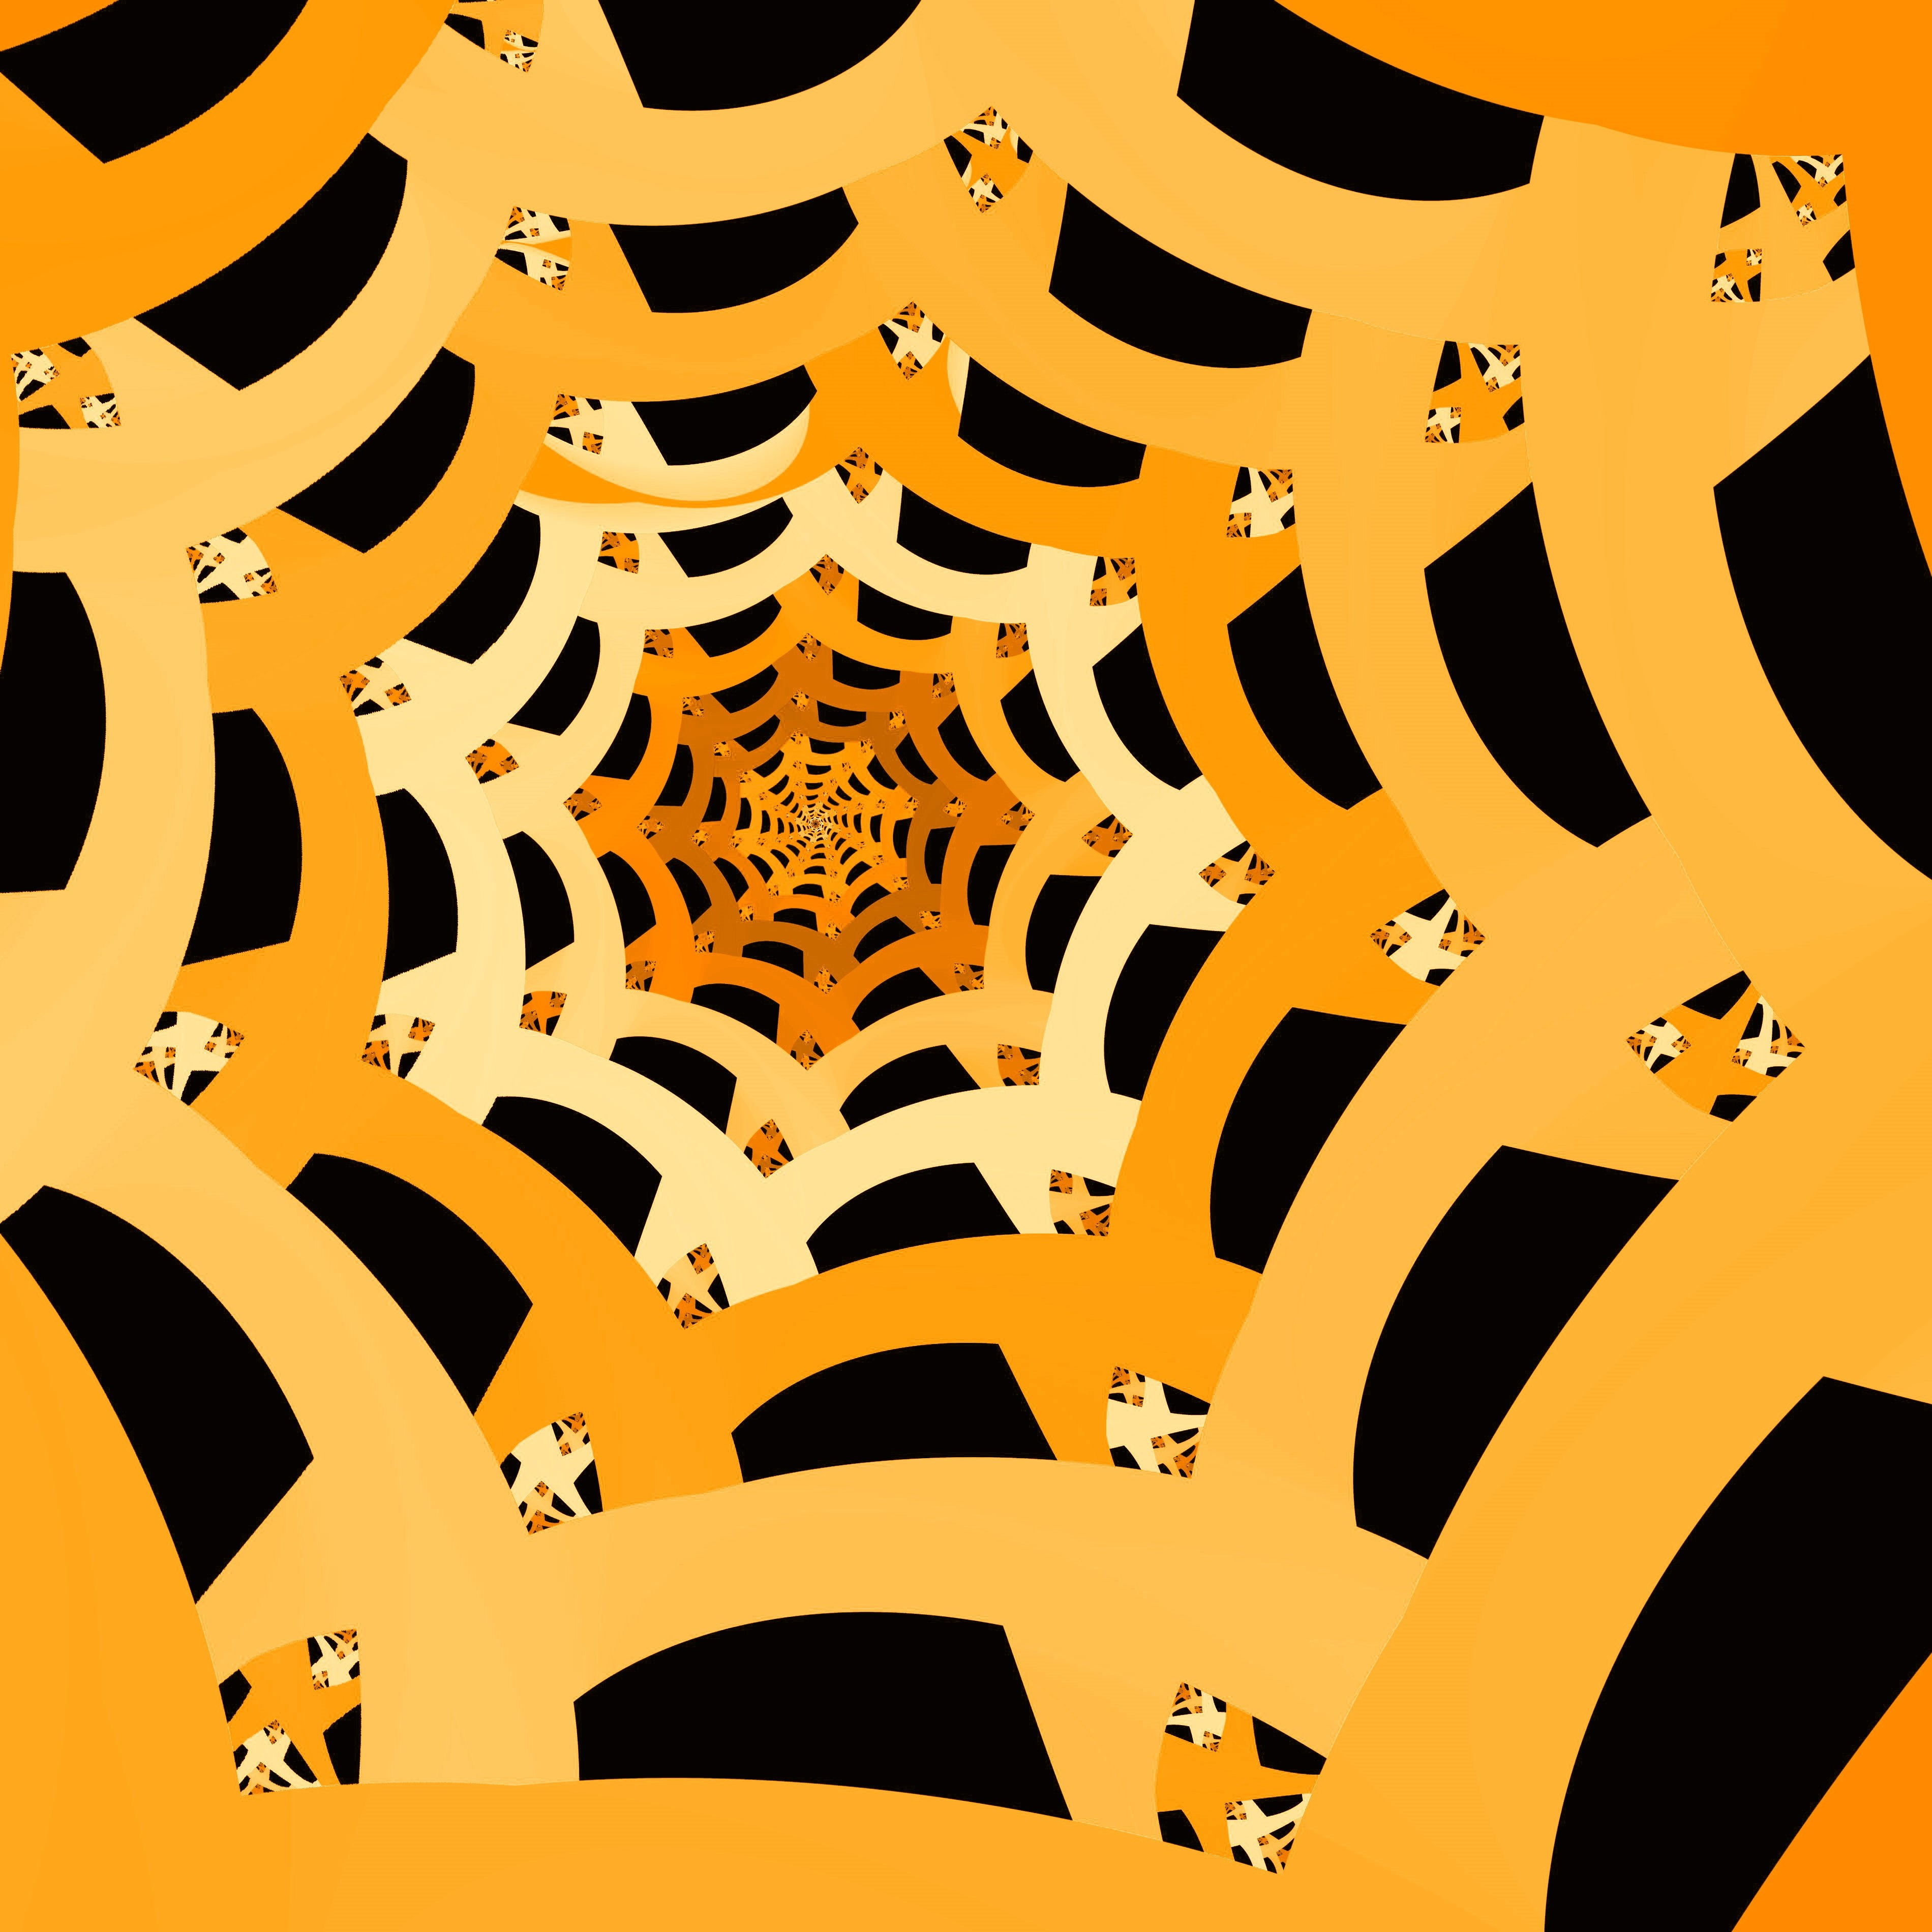 a digitally generated spiders web pattern in orange